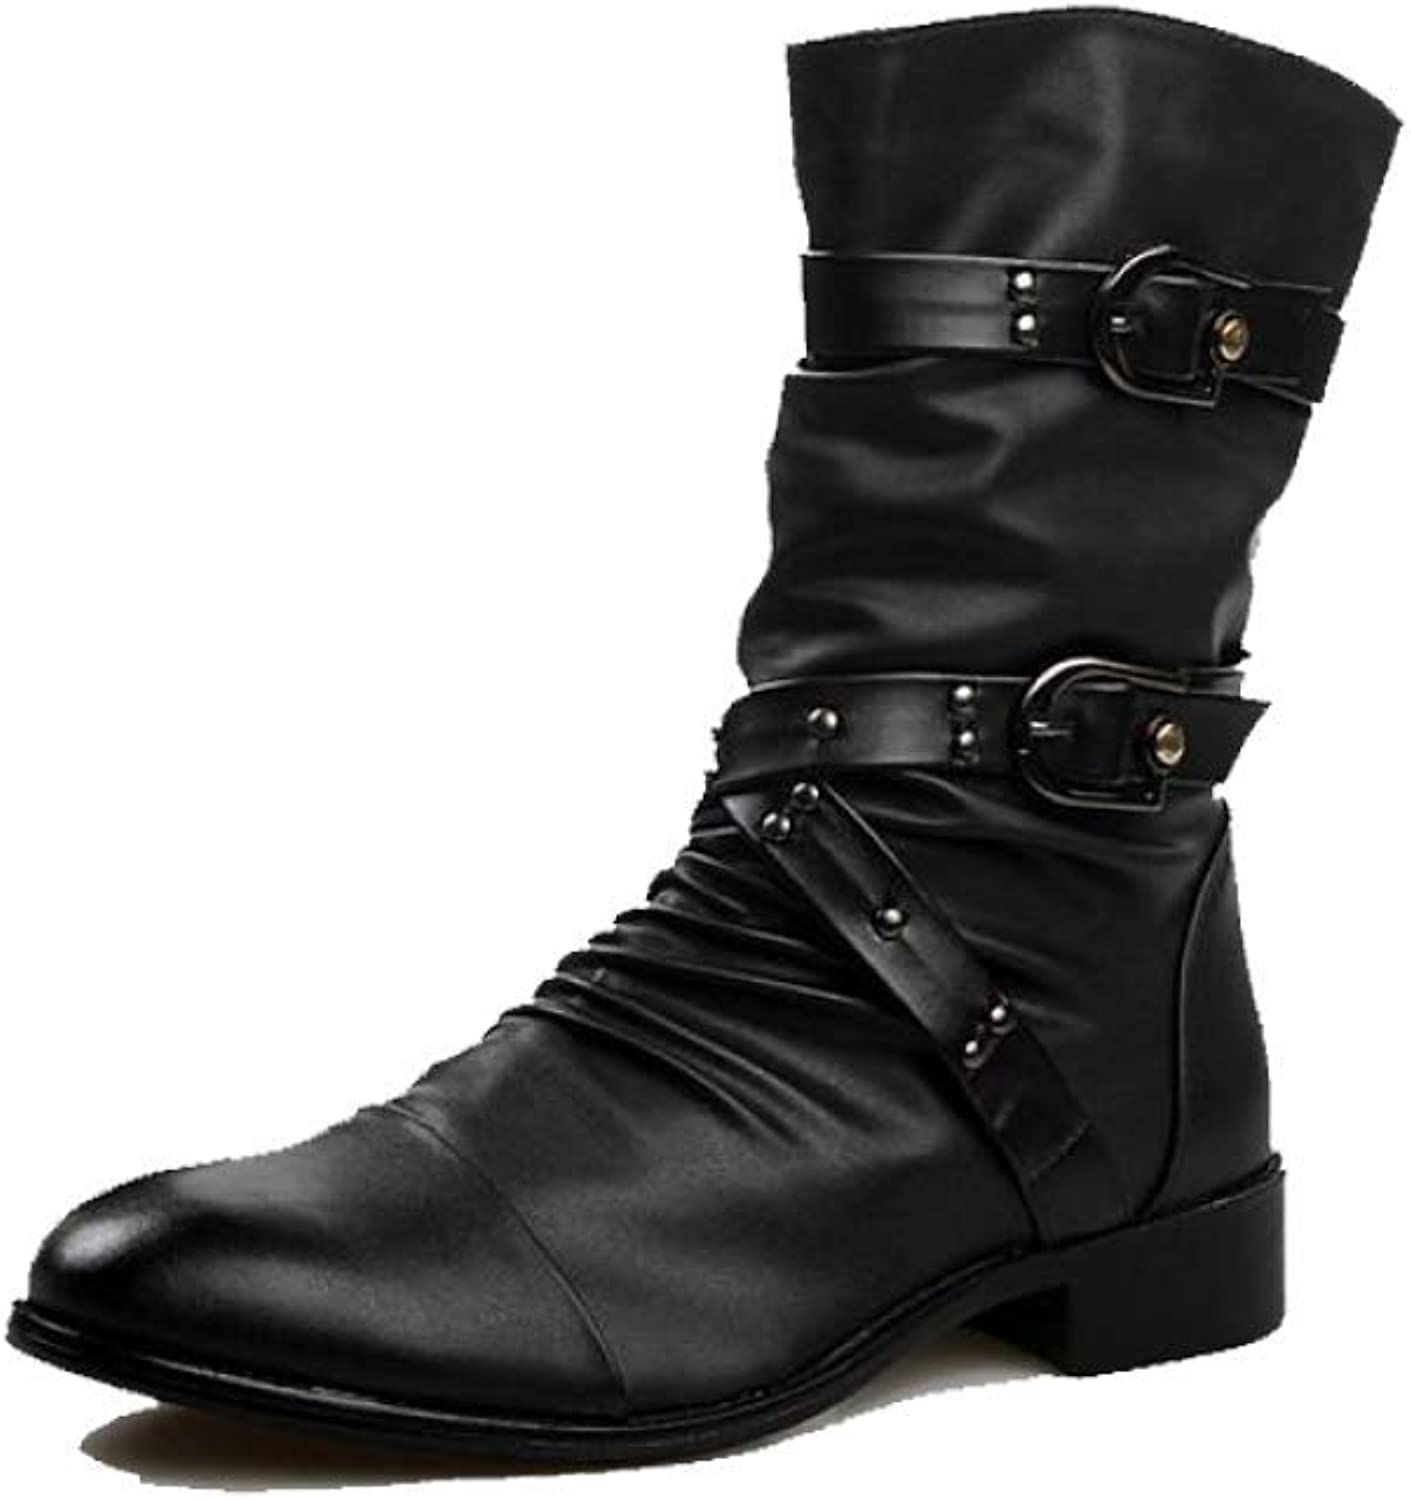 AEYMF Martin Boots Men's British Army Boots High Boots Pointed British Men's Boots